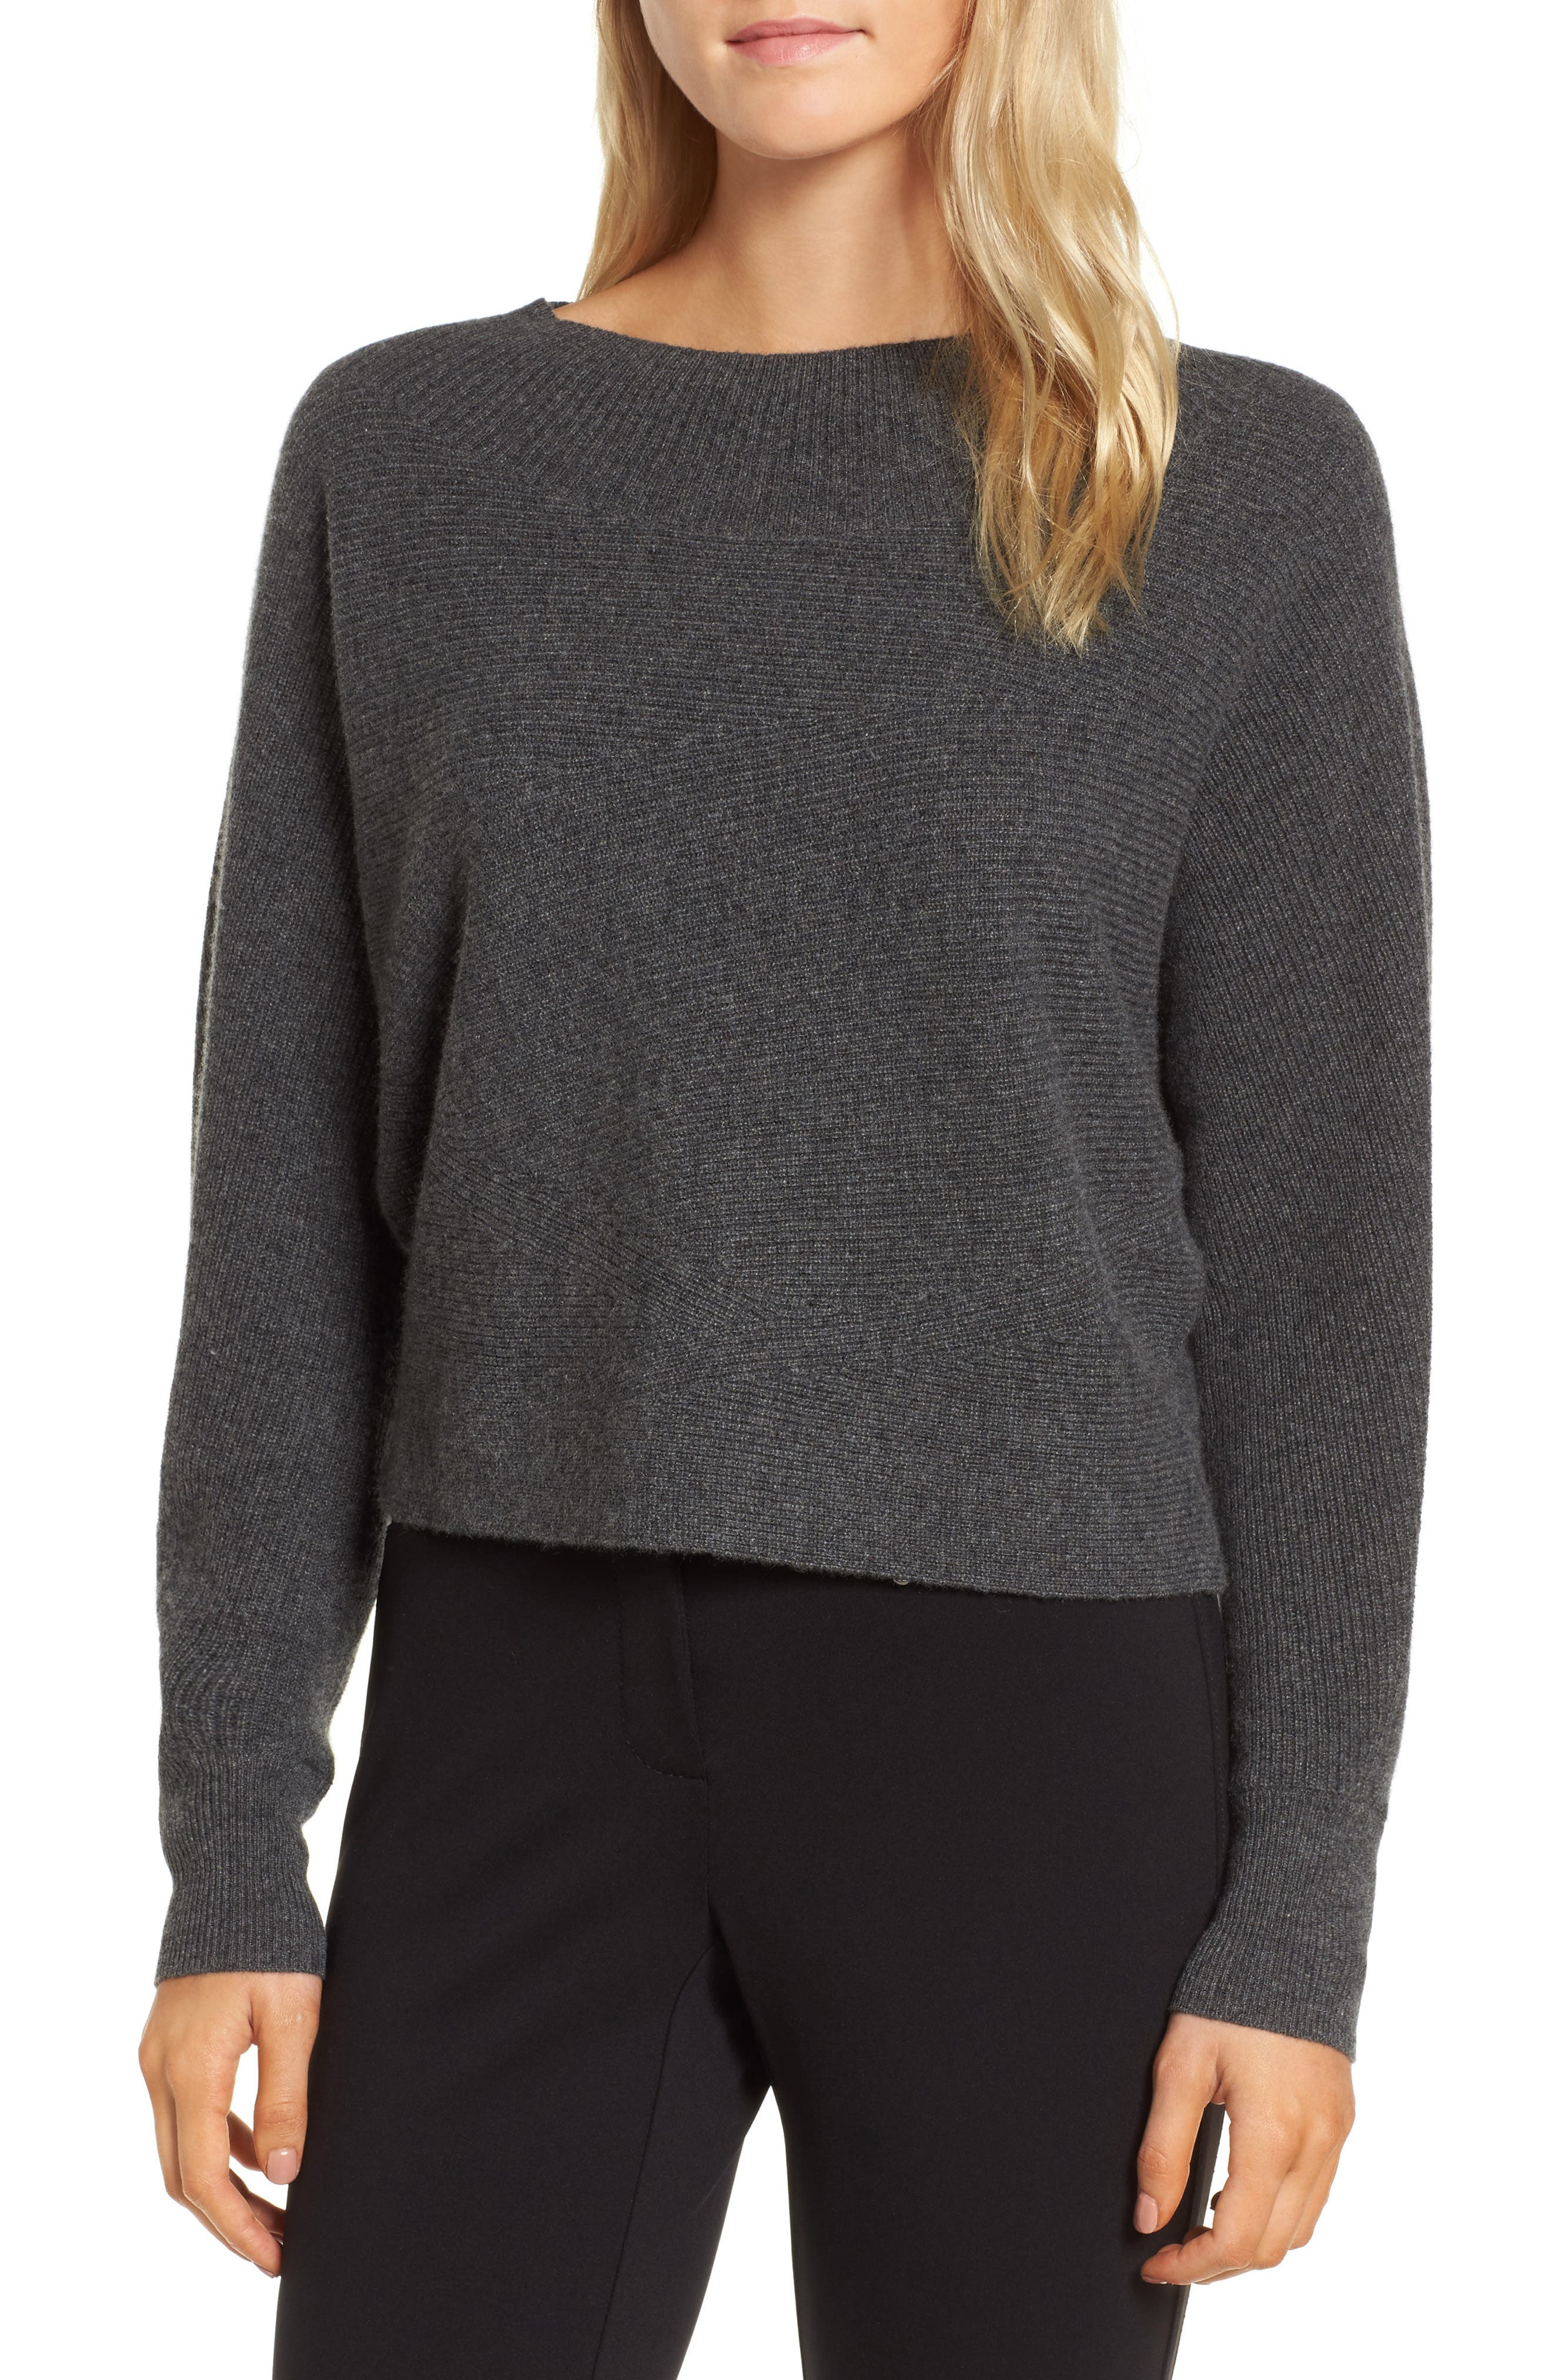 Women's Nordstrom Signature Cashmere Sweaters | Nordstrom